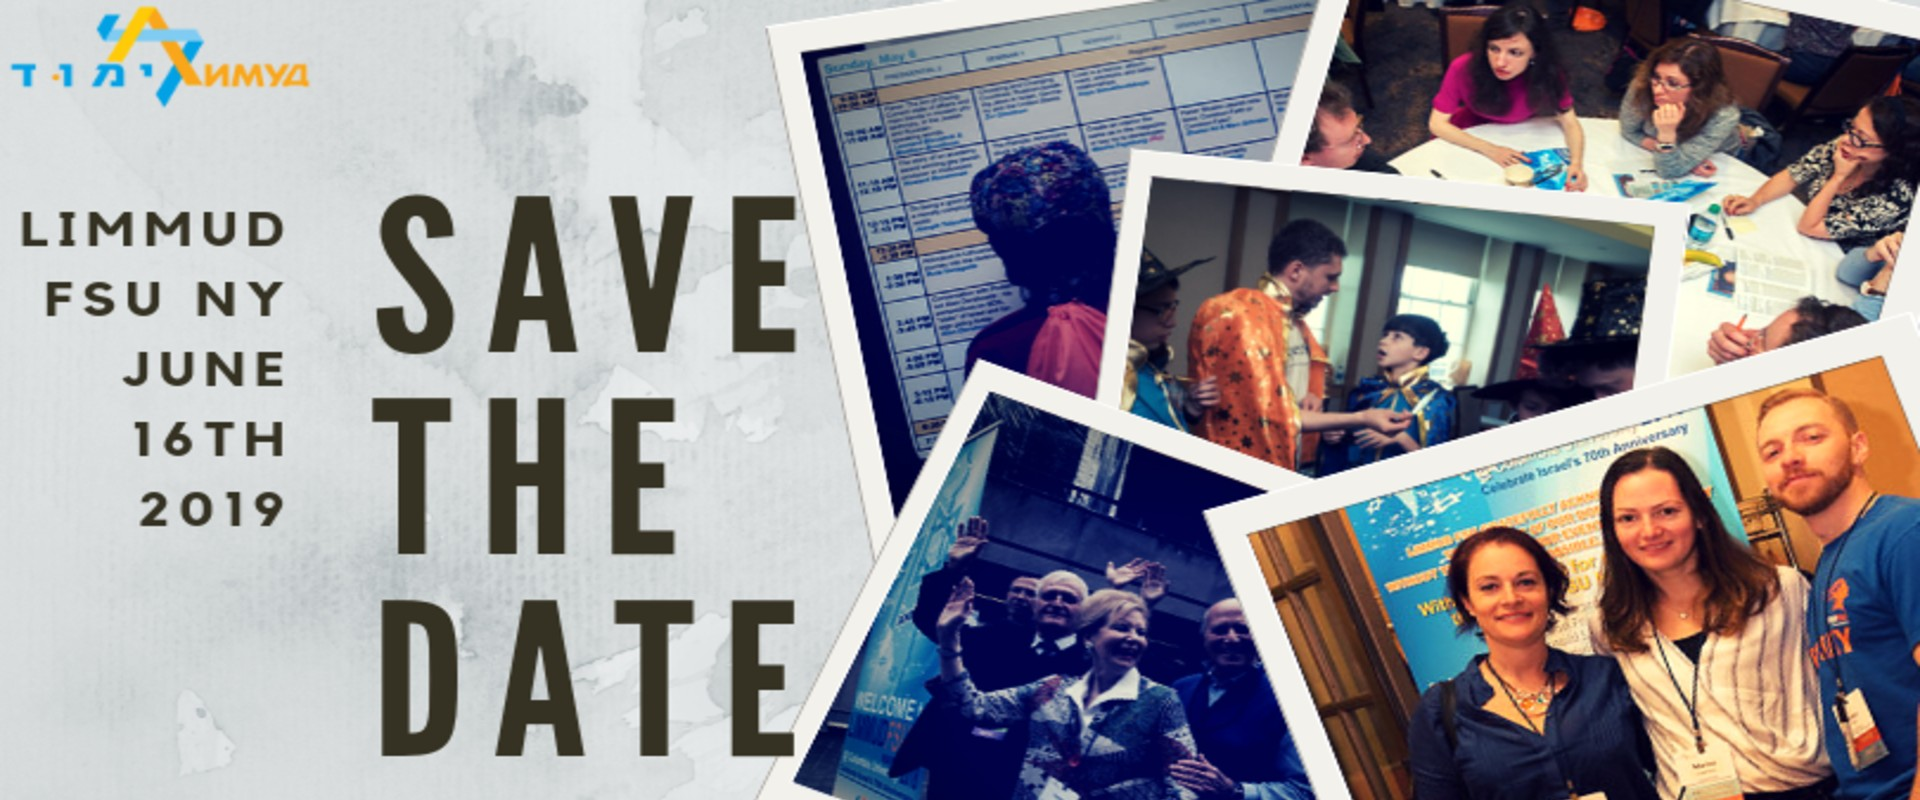 Limmud FSU NY 2019 Save the Date